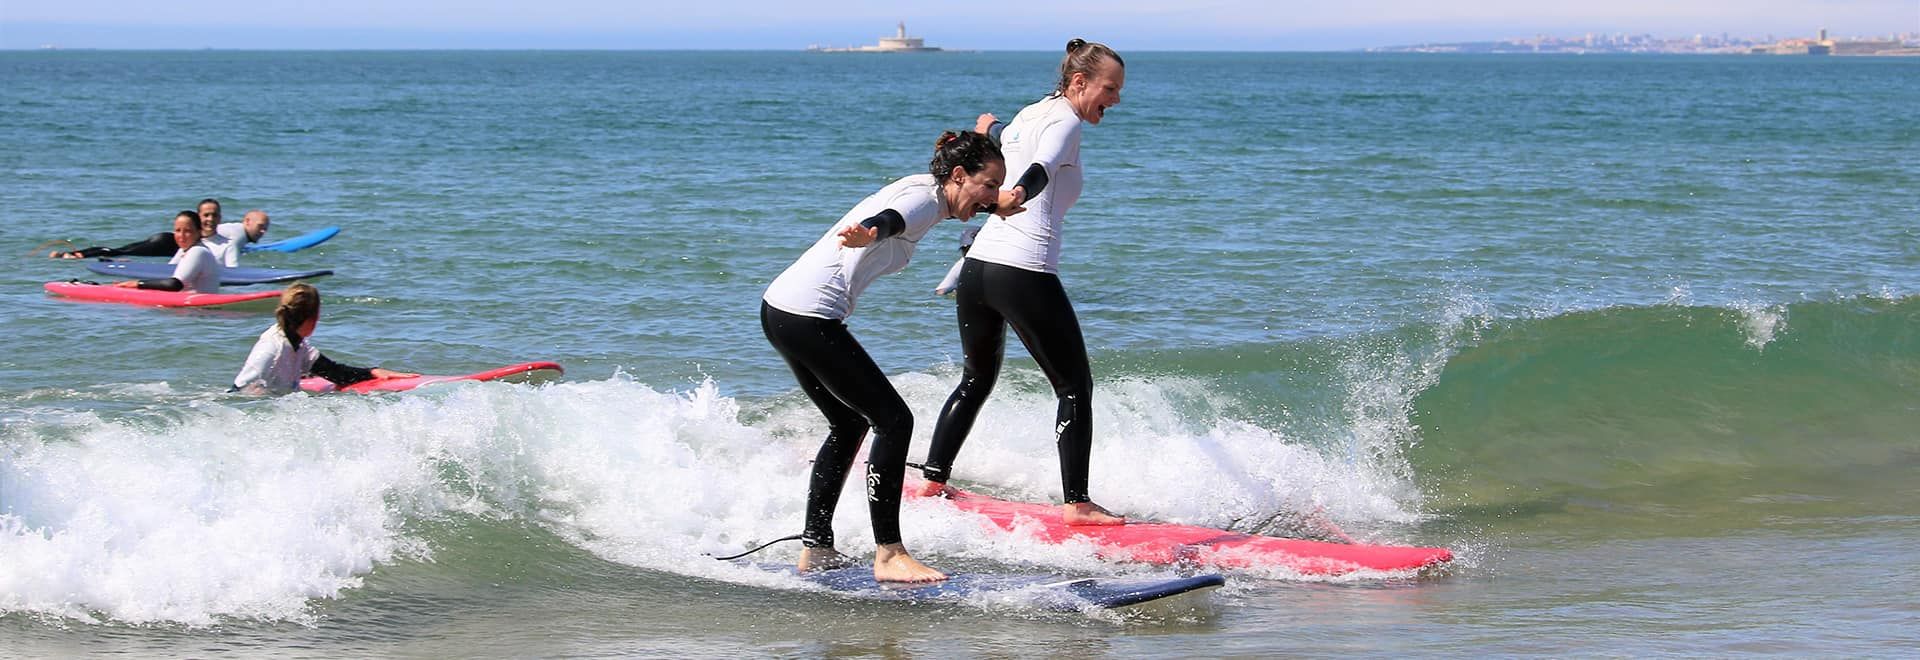 surf students surfing during lesson